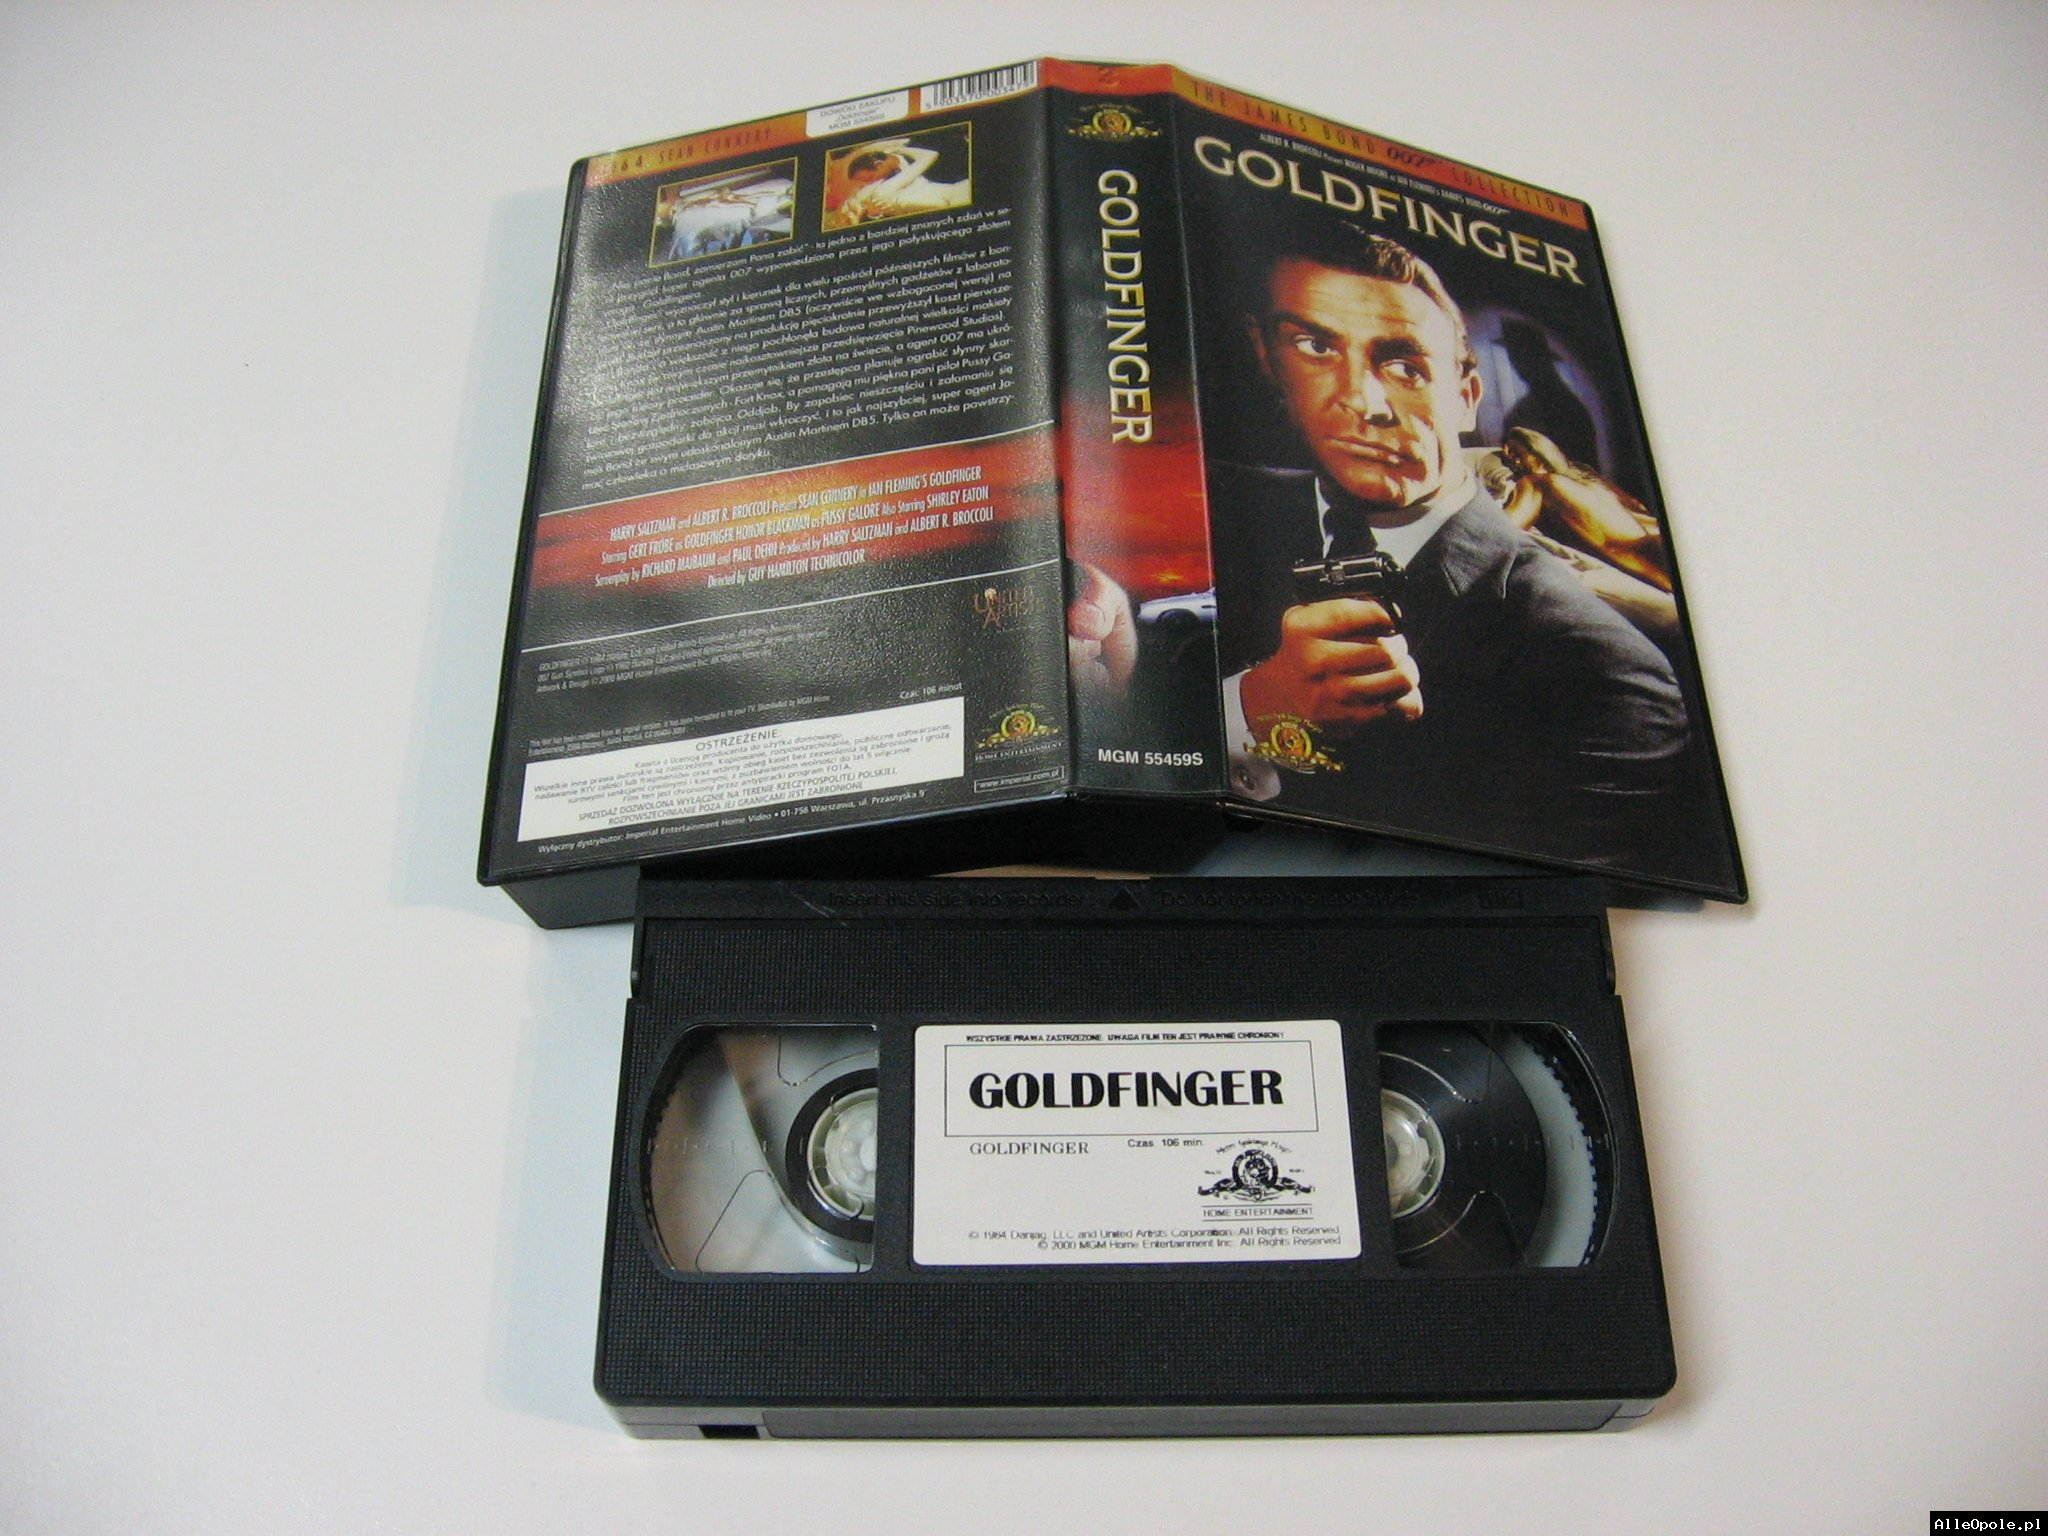 007 GOLDFINGER - VHS Kaseta Video - Opole 1737